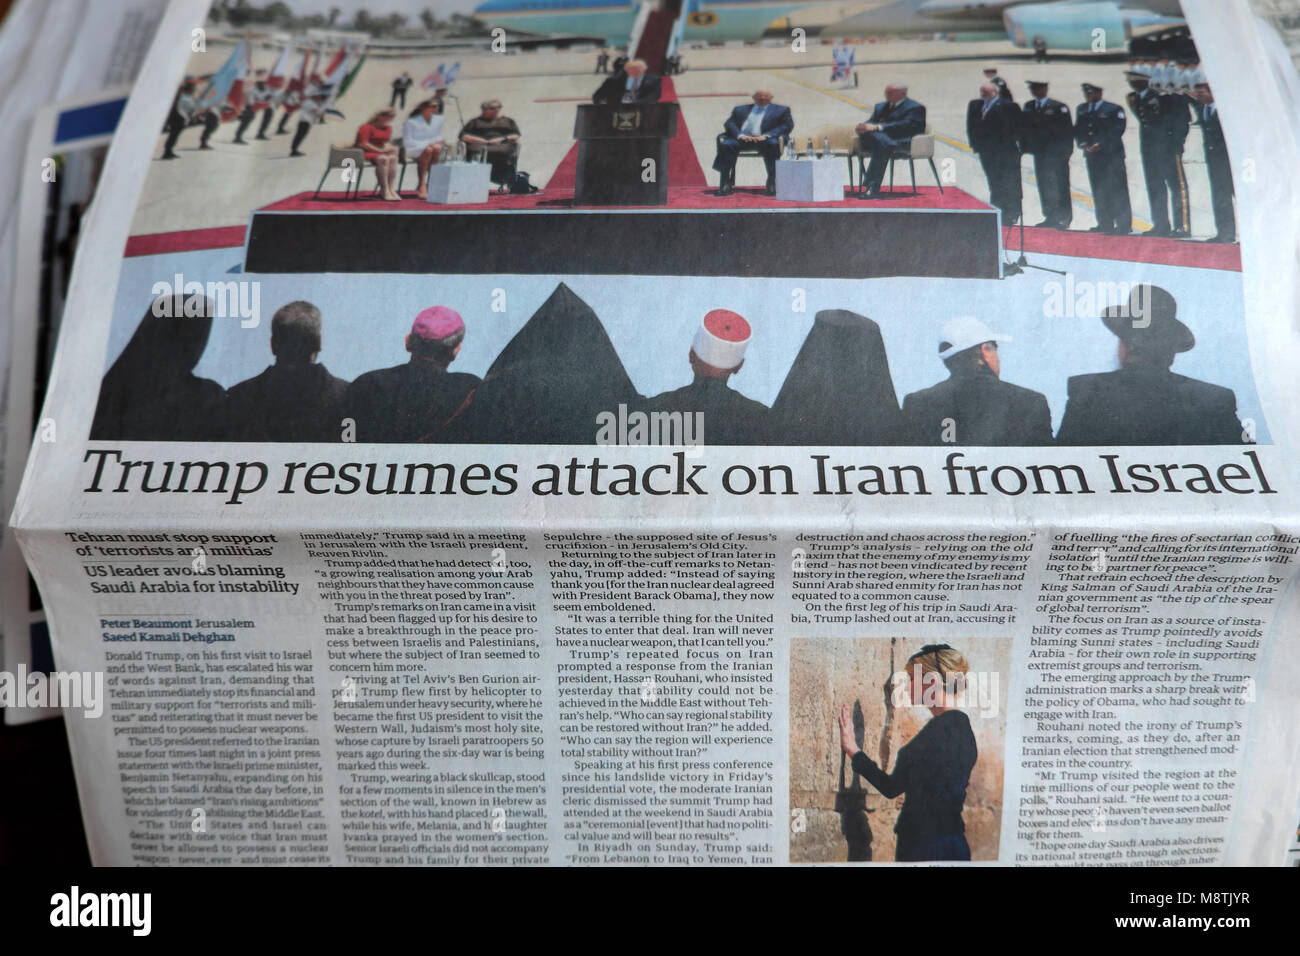 trump resumes attack on iran from israel news article in the stock